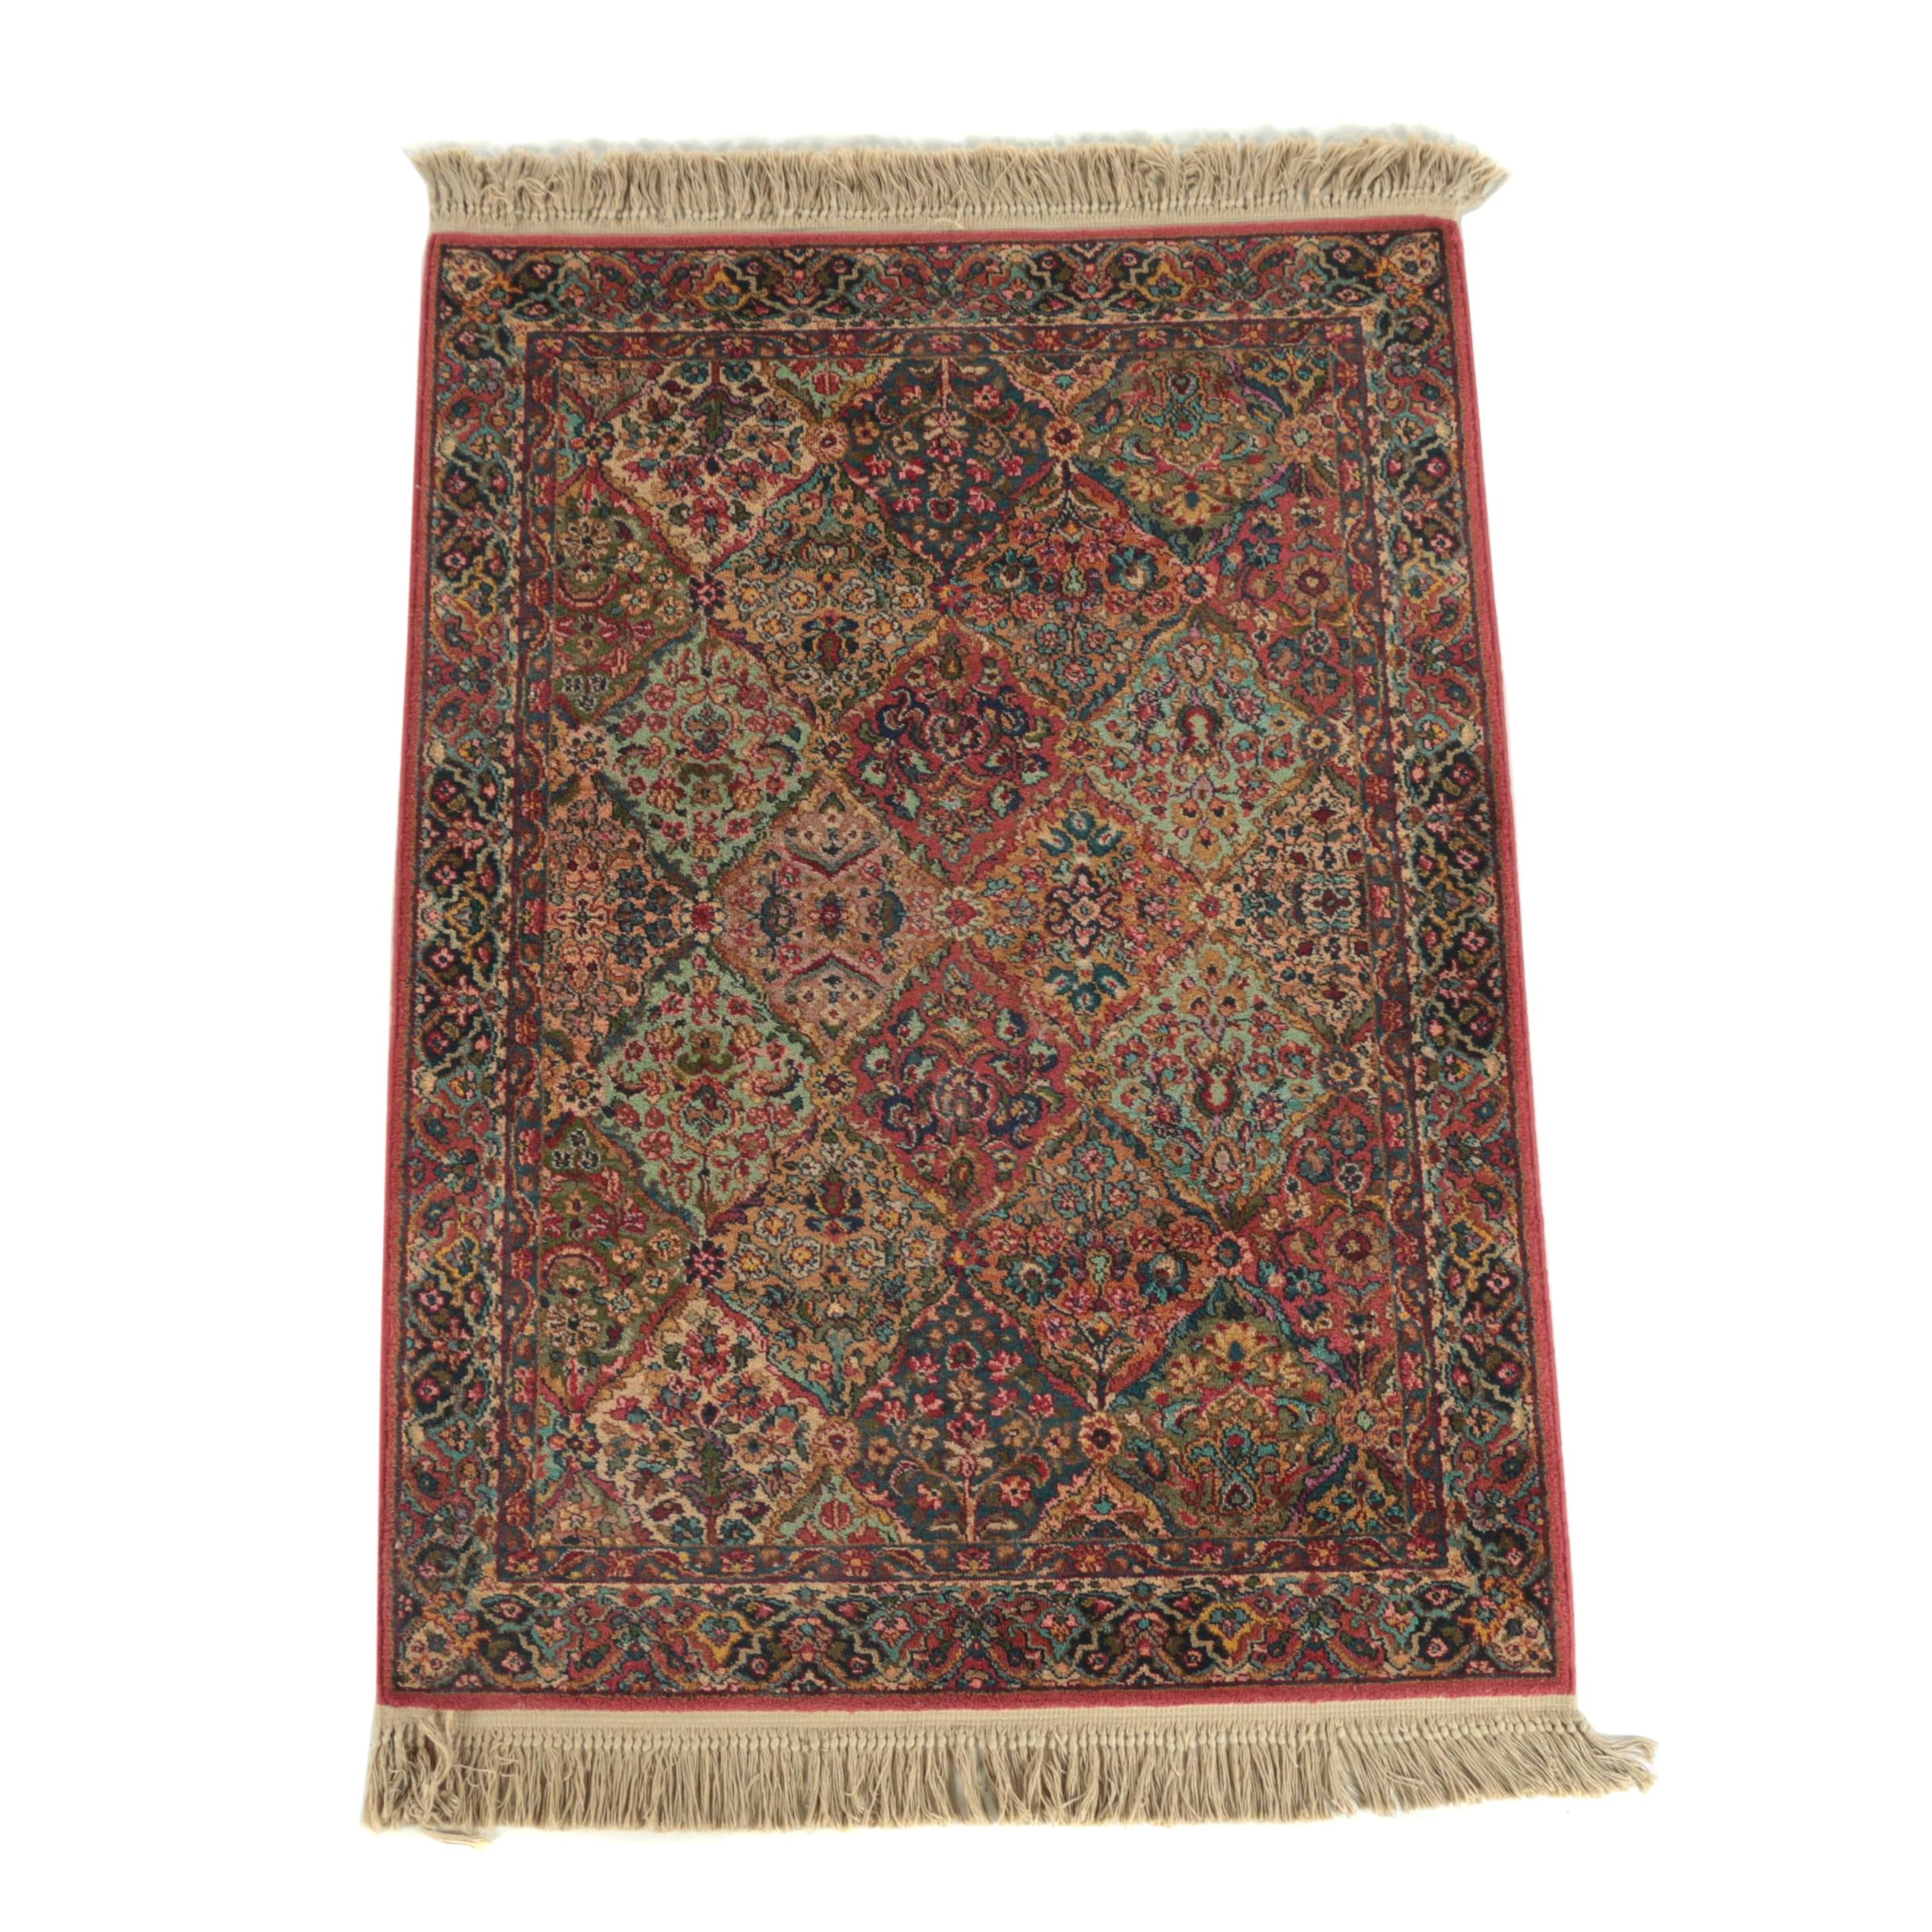 "Power Loomed Karastan ""Multicolor Panel Kirman"" Wool Area Rug"